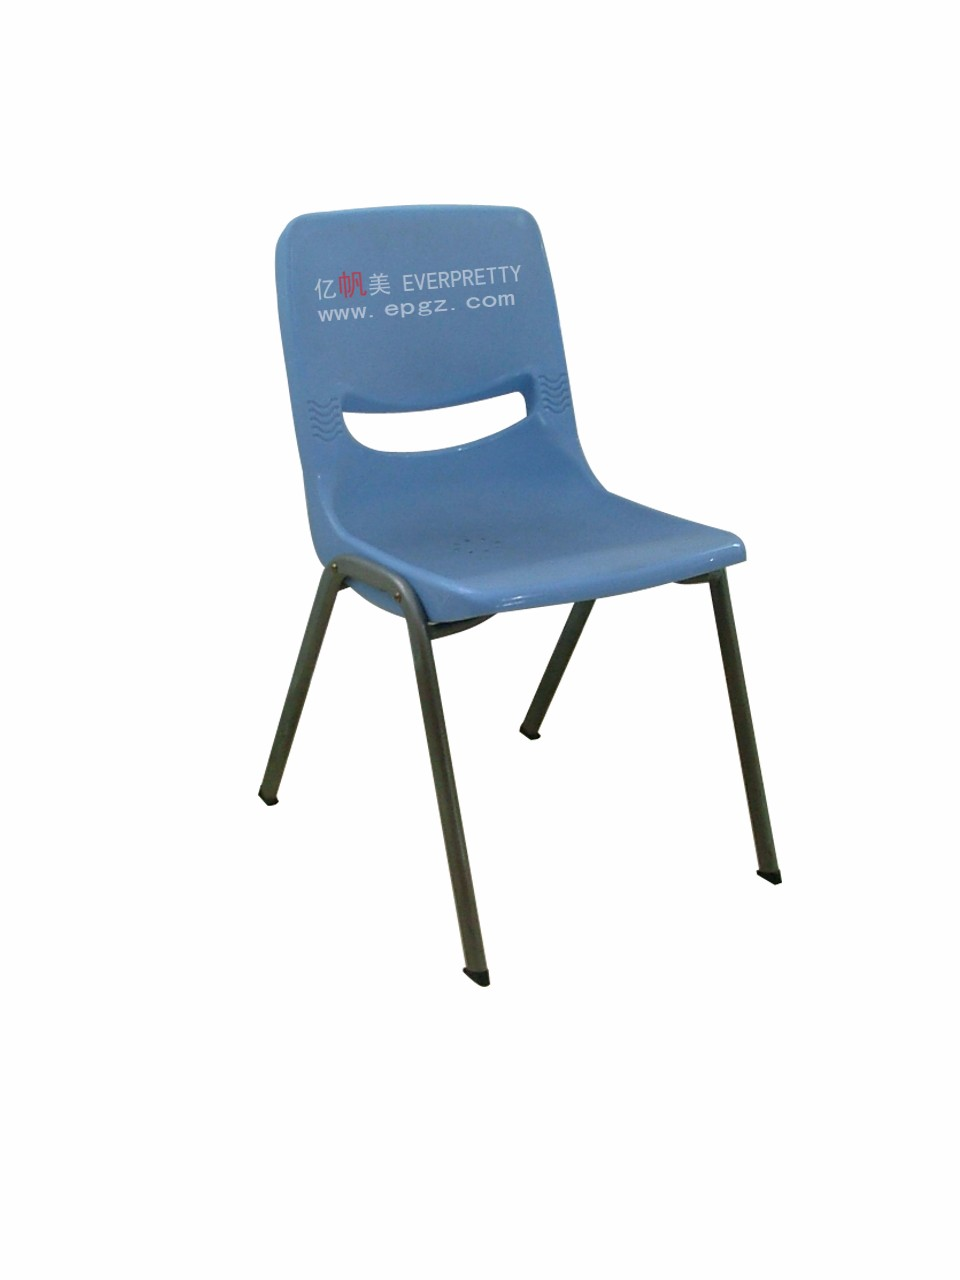 Plastic Waiting Chair Wholesale Furniture Office Chair View Plastic Waiting Chair Everpretty